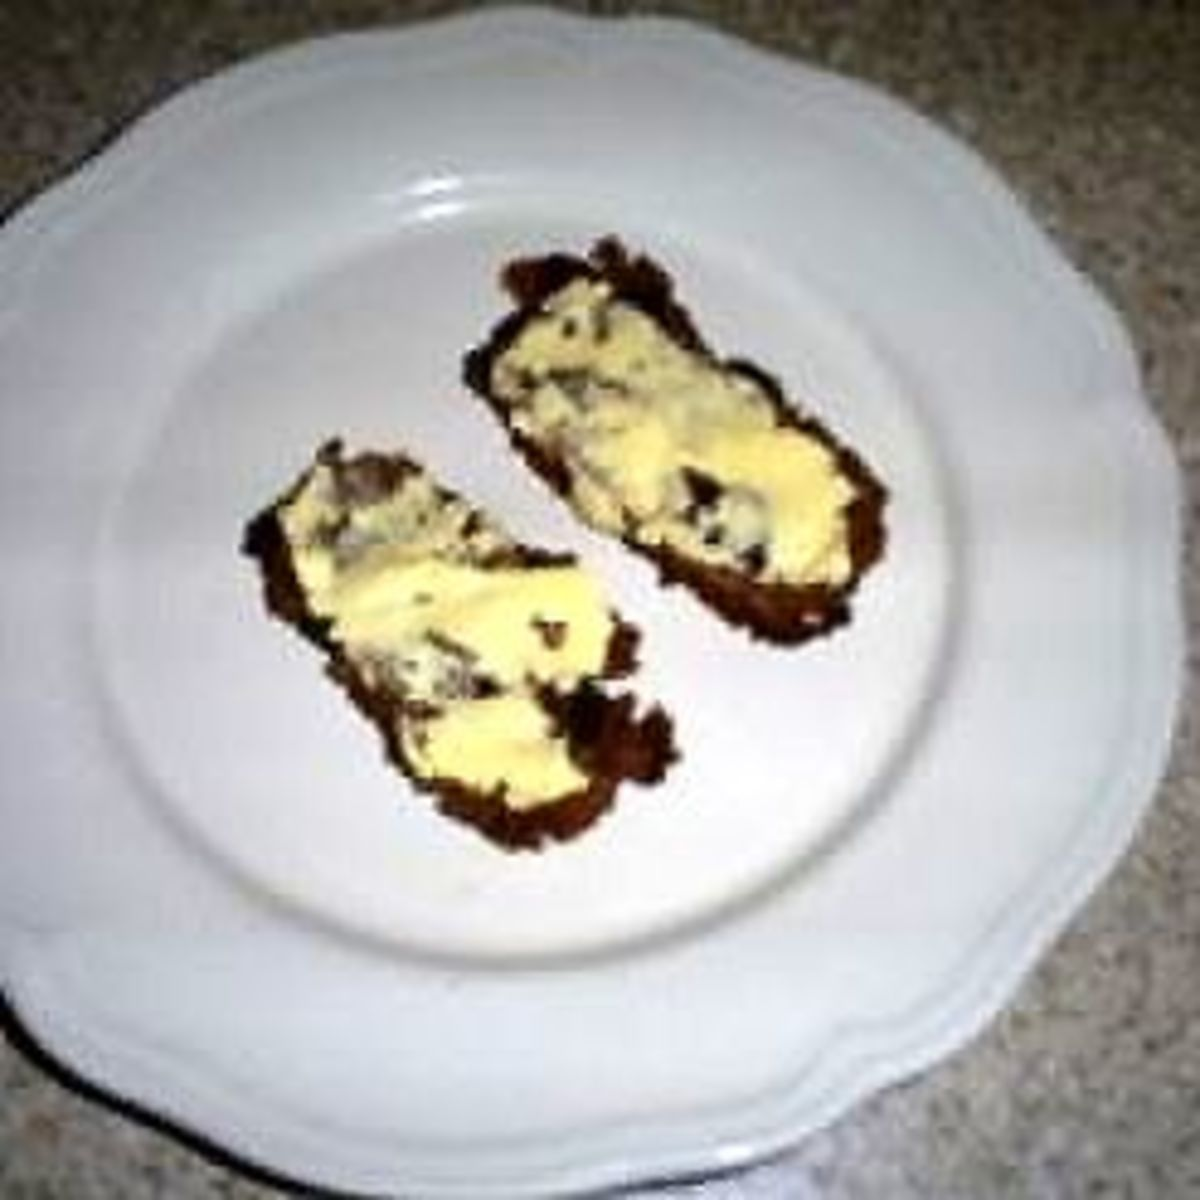 Home Made Fruit Loaf using Bran Flakes